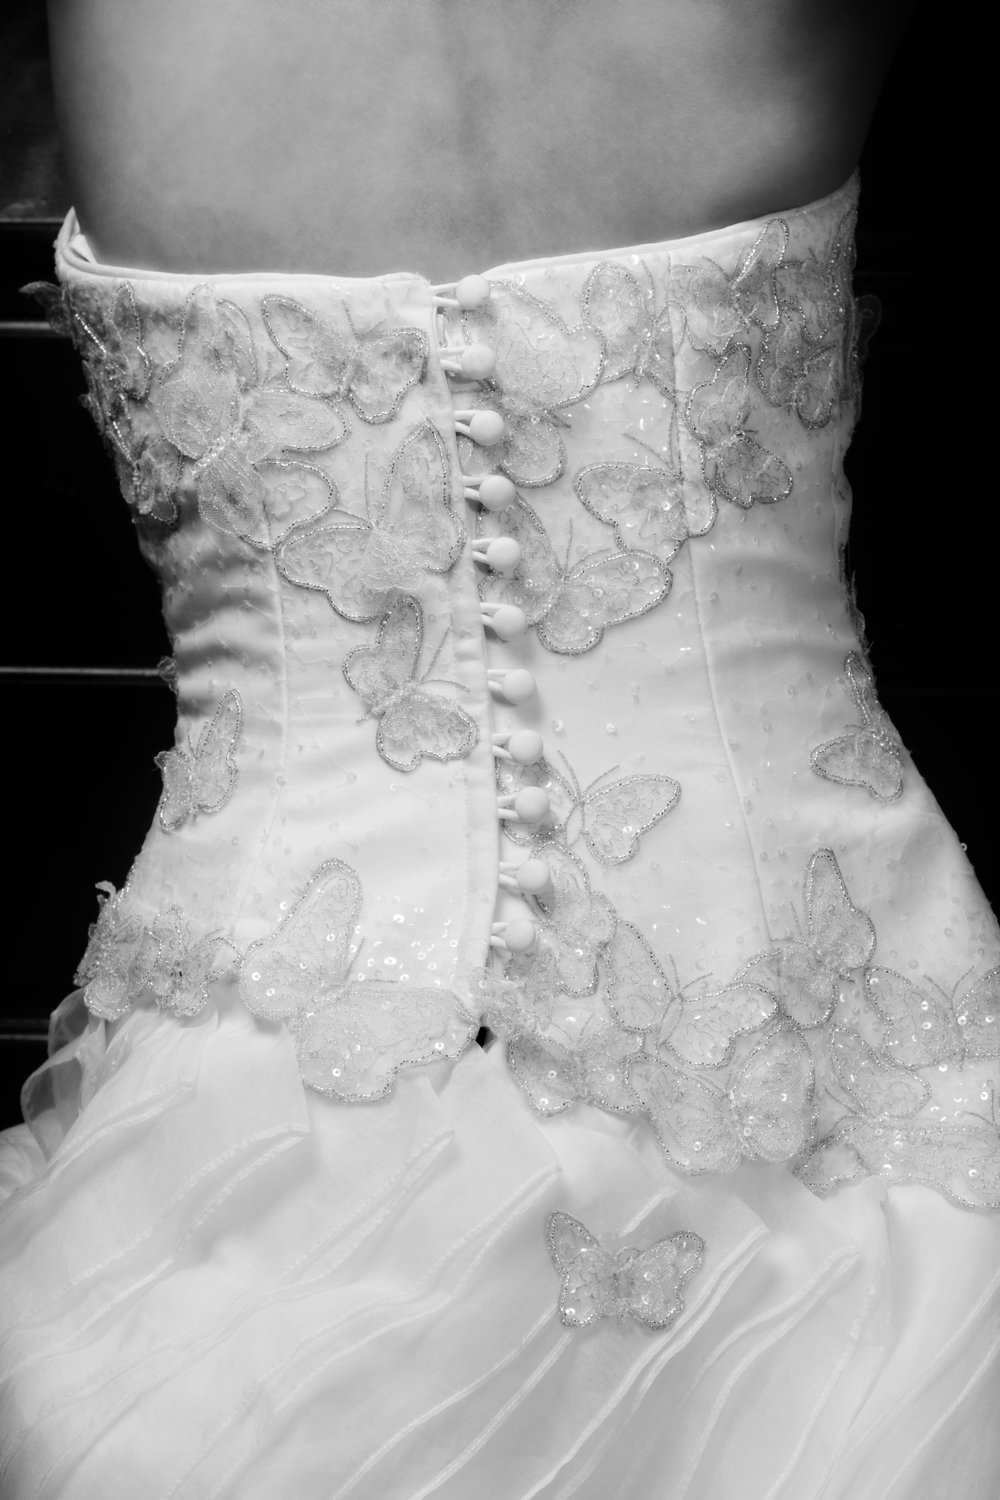 Details on the back of the bride's dress. A picture almost guaranteed to be featured in the wedding album.